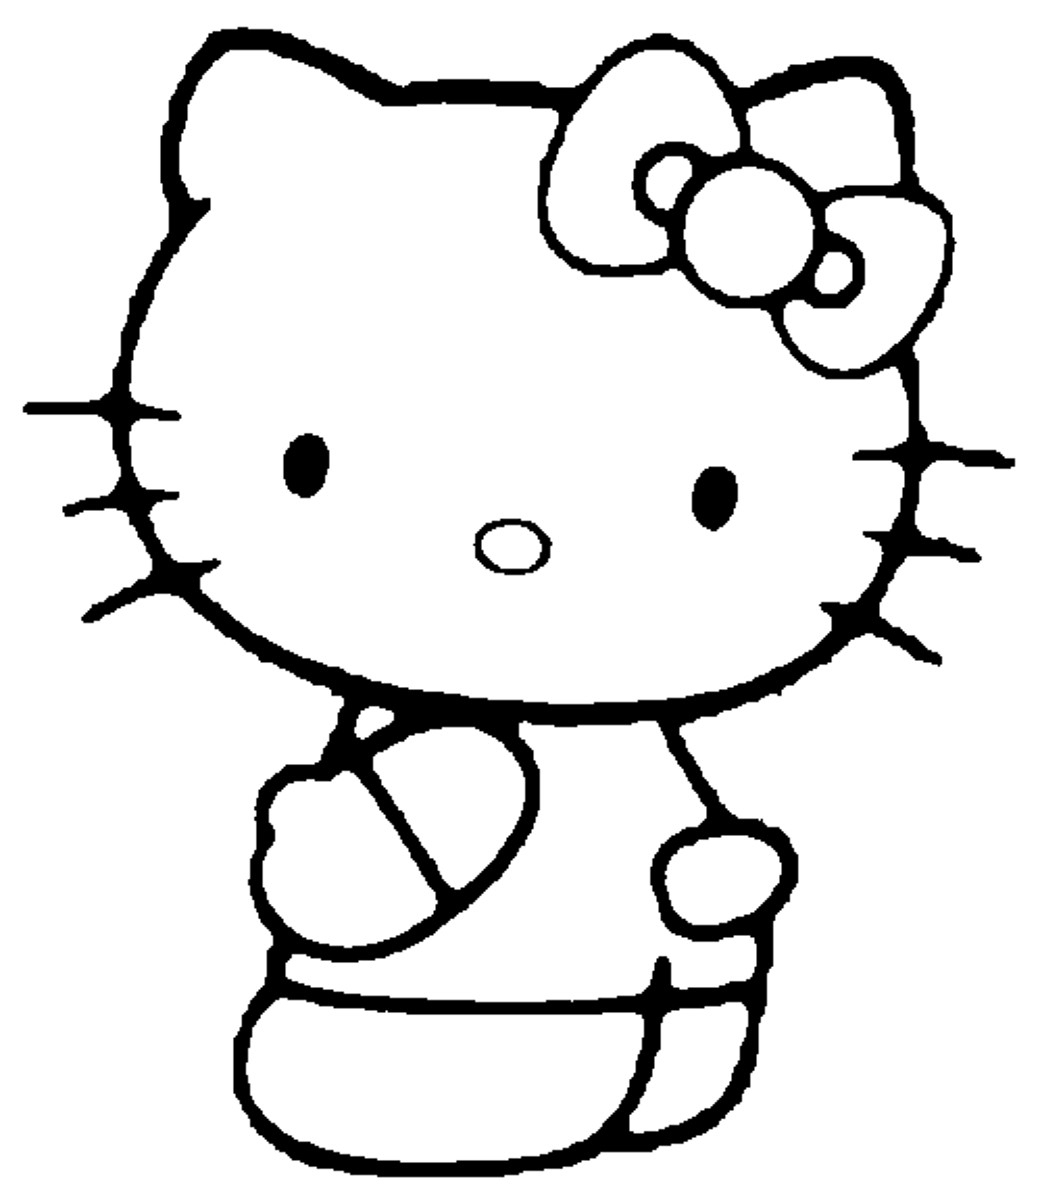 Hello Kitty #46 (Dessins Animés) – Coloriages À Imprimer tout Hello Kitty À Dessiner